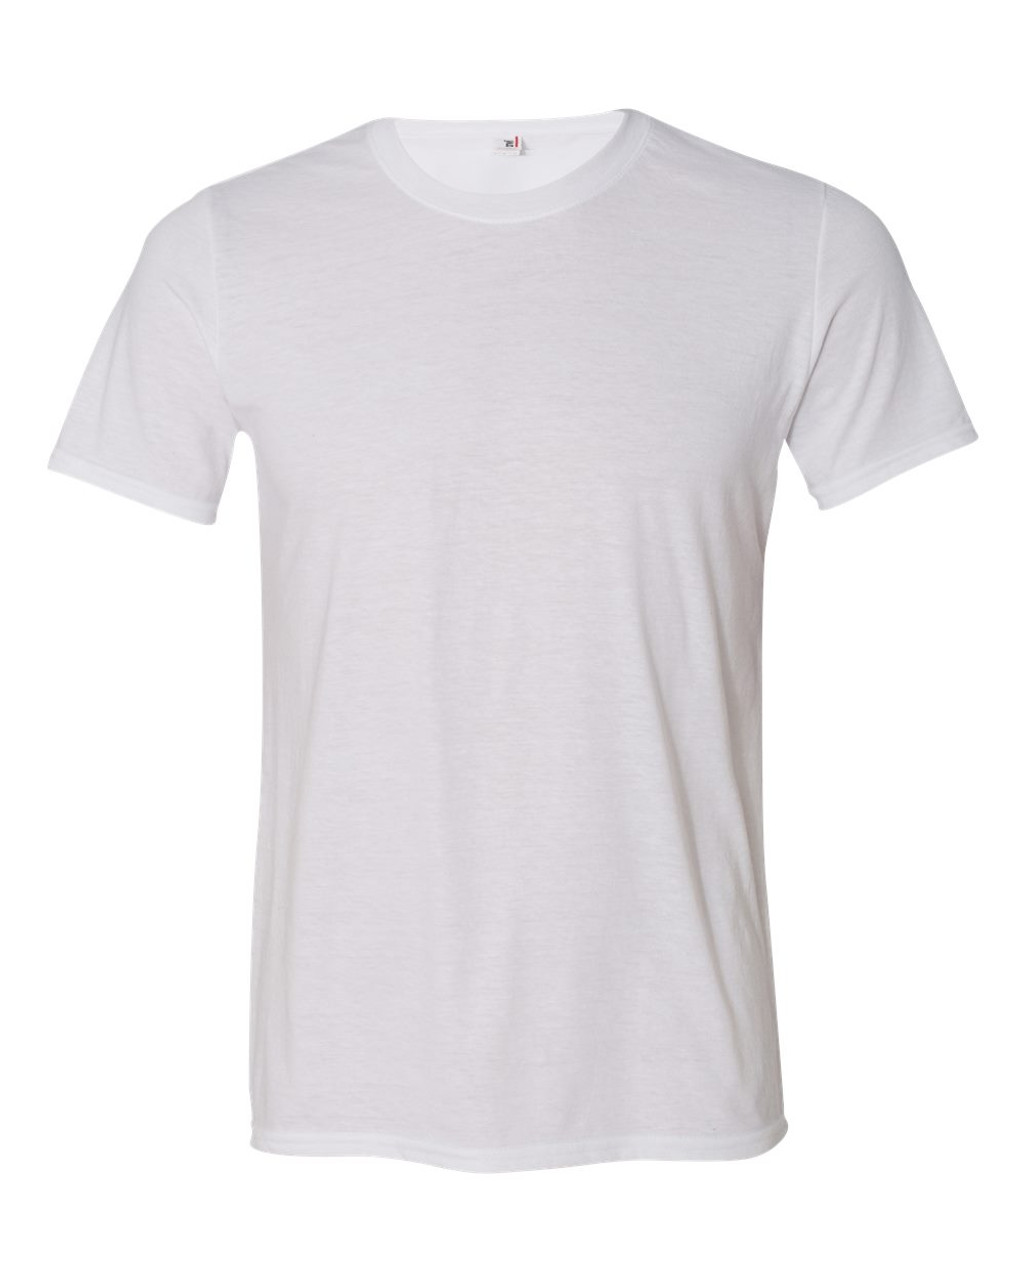 6750 Anvil Triblend Crew Neck Tee | T-shirt.ca